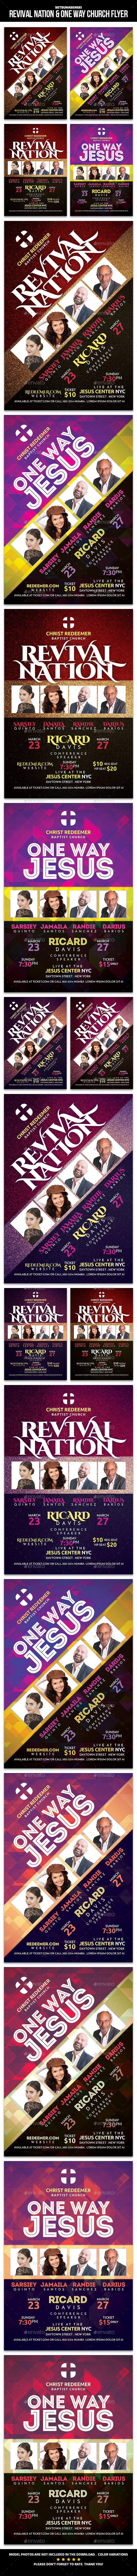 Revival Nation and One Way Church Flyer - Church Flyers